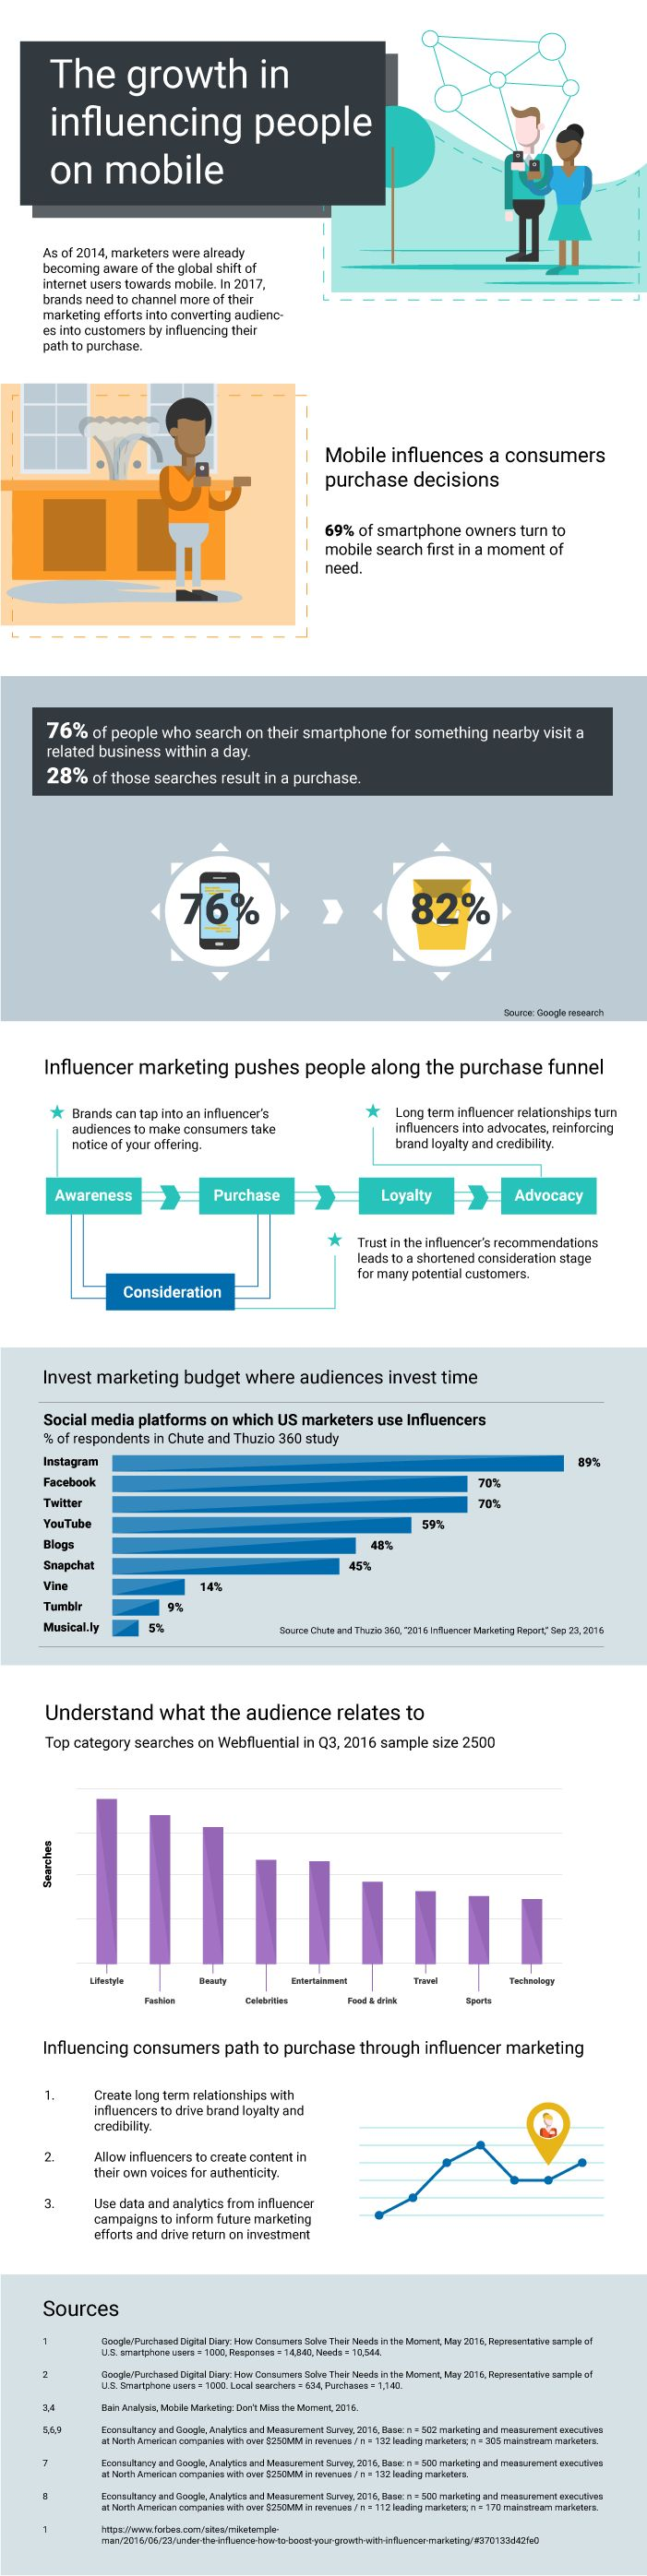 Influencing People on Their Mobile Devices [Infographic] Read more at http://www.business2community.com/infographics/influencing-people-mobile-devices-infographic-01820035#g1ICcoTVSByWuRrt.99